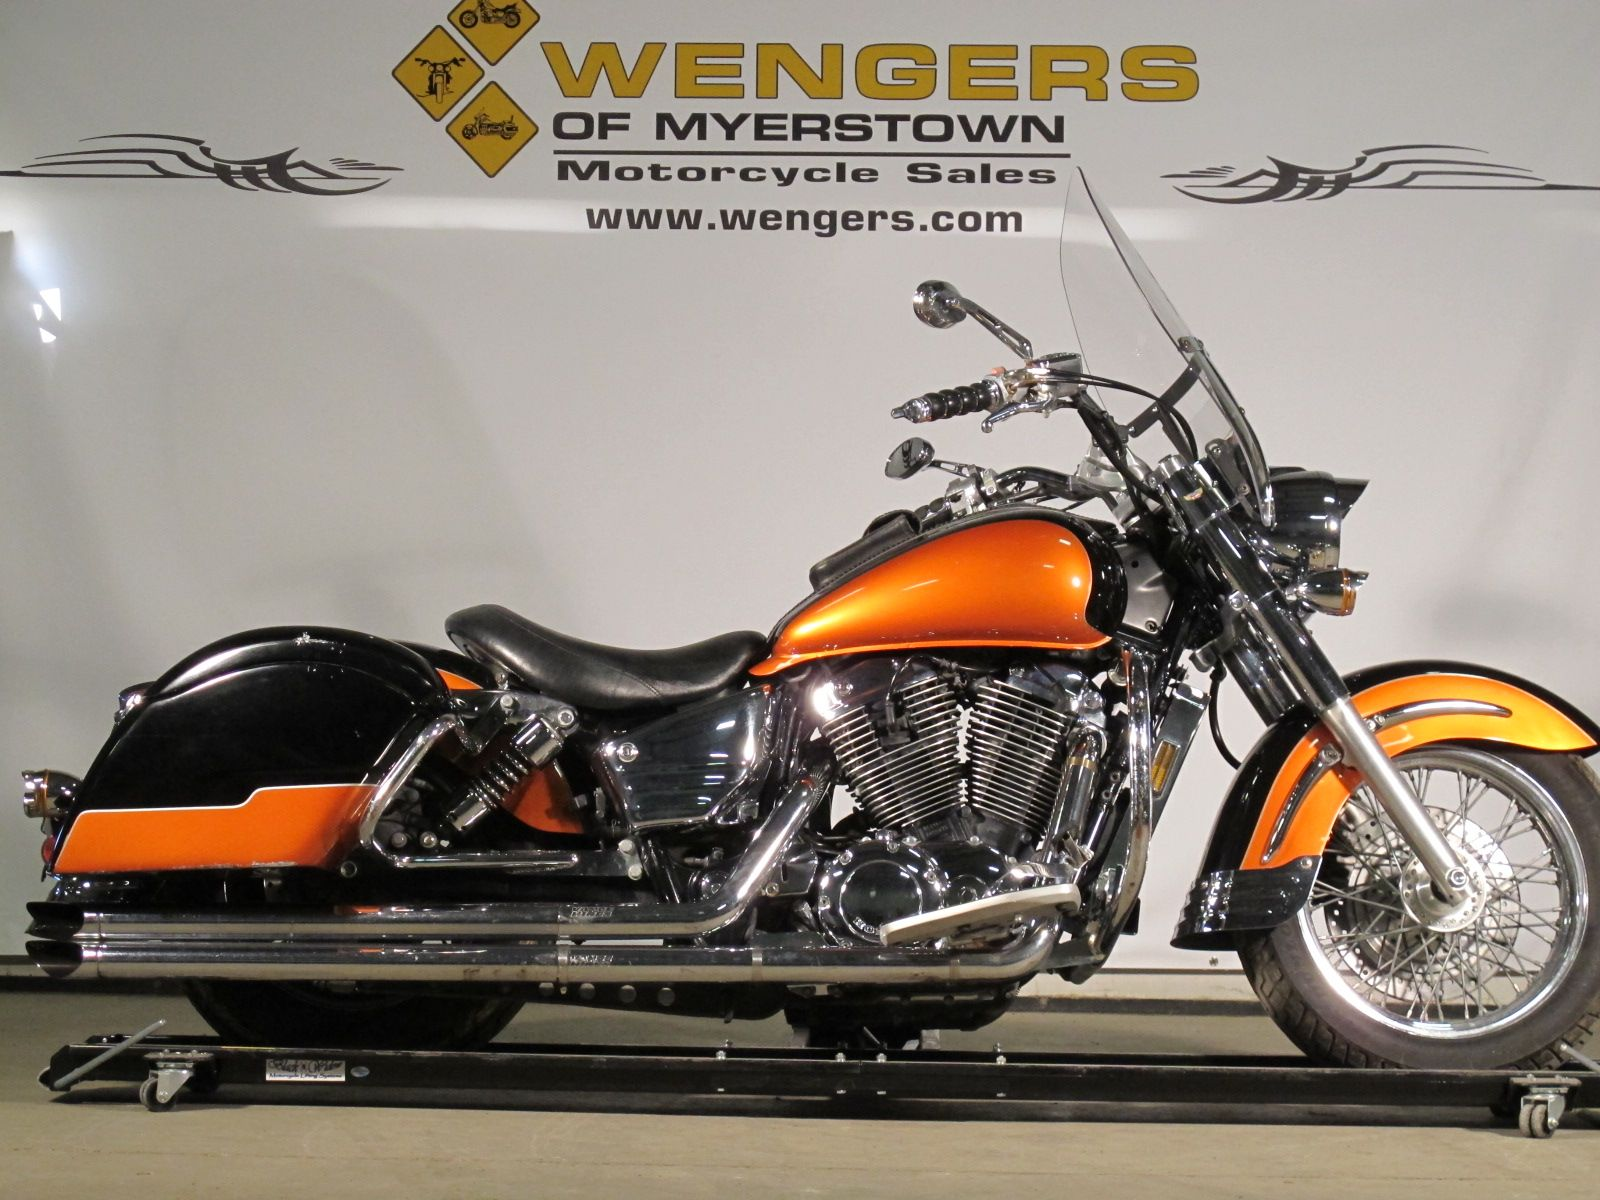 medium resolution of 2002 honda shadow aero 1100 for sale at wengers of myerstown motorcycle sales only 4 799 sold